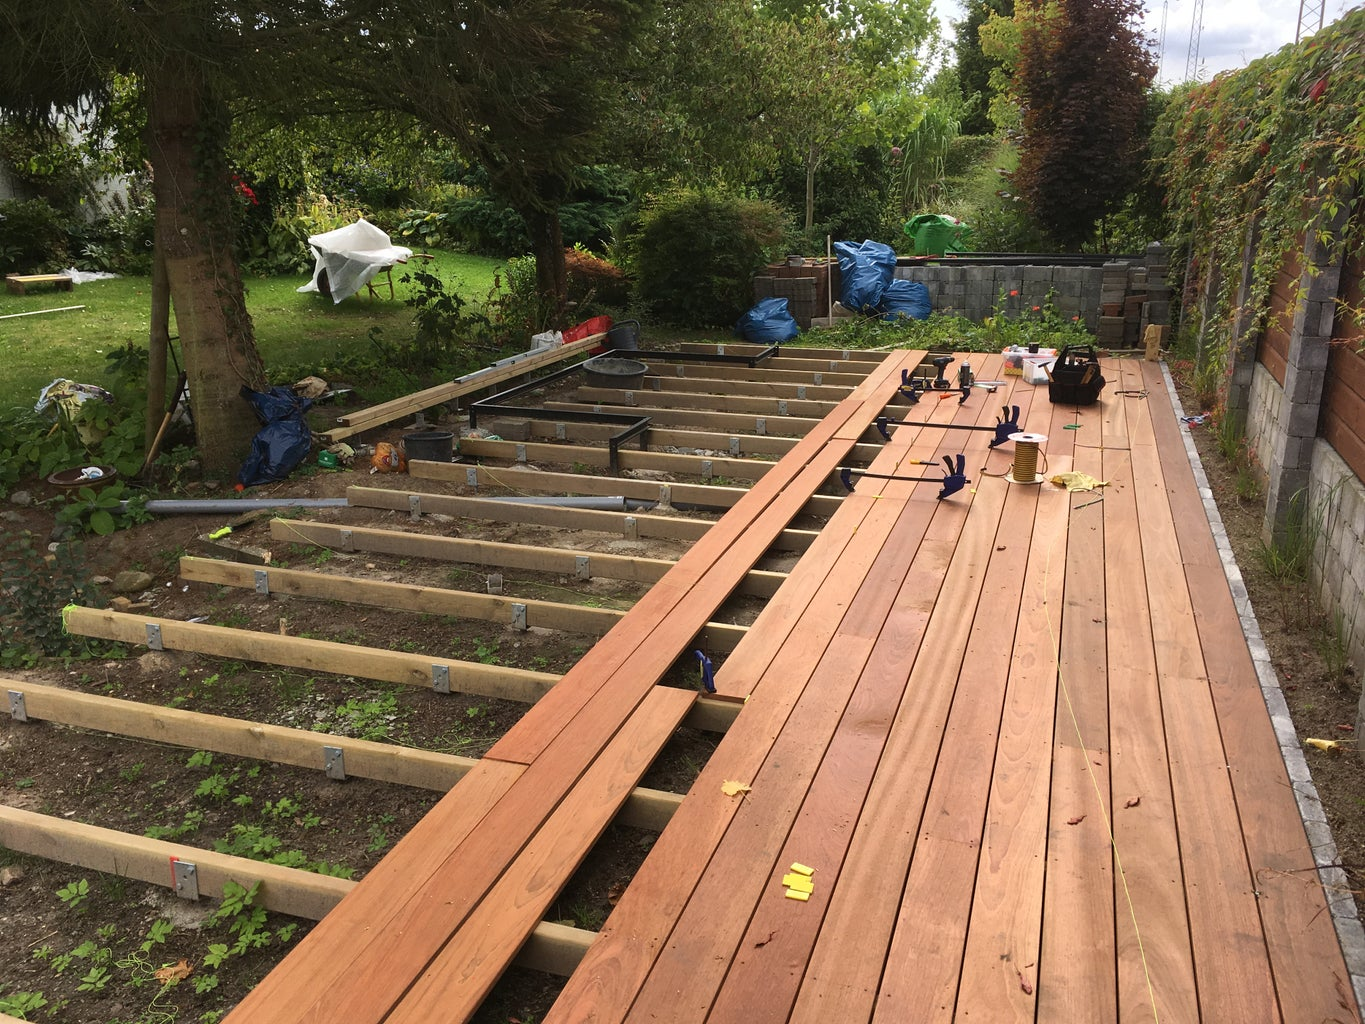 Laying the Deck